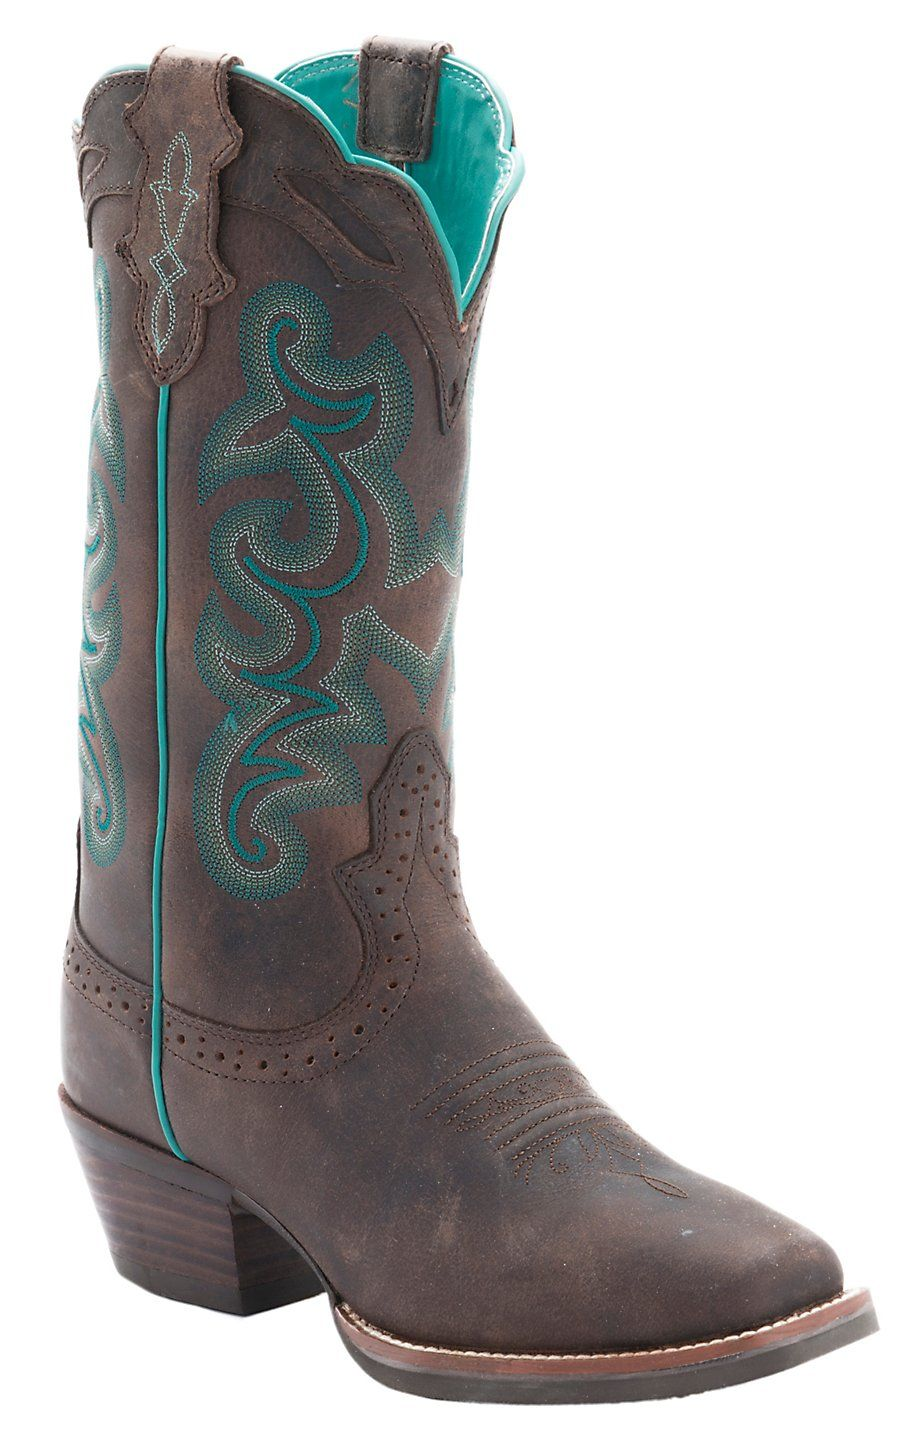 justin boots on cowboy boots sperrys